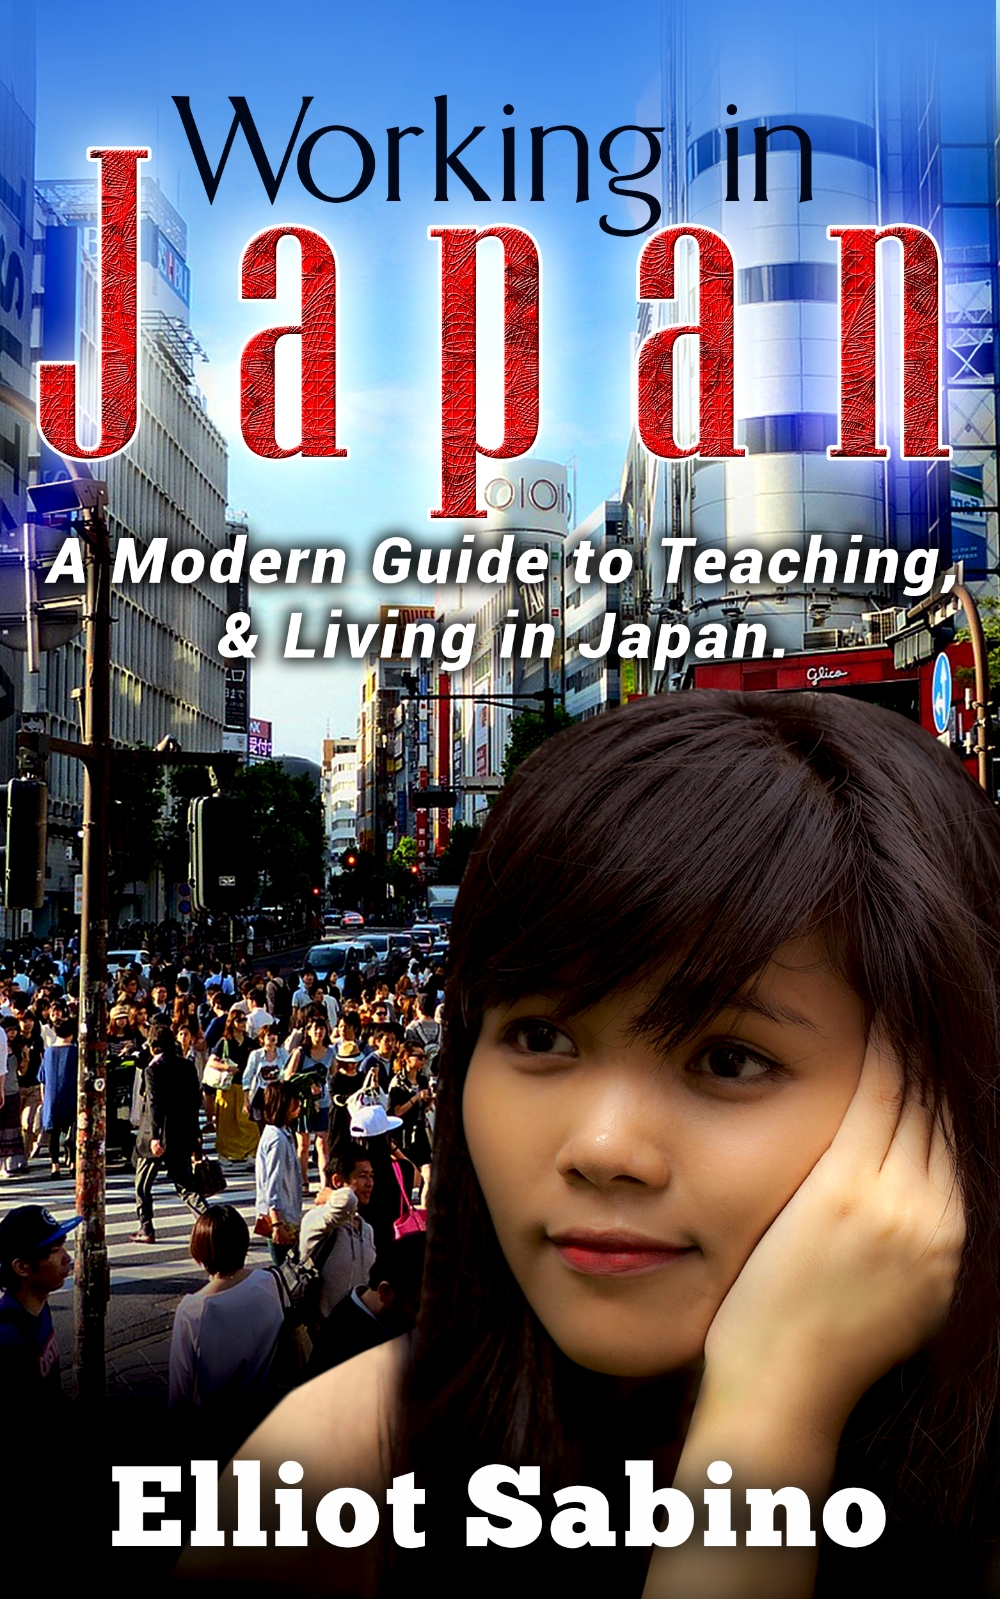 Working_in_Japan Cover .jpg